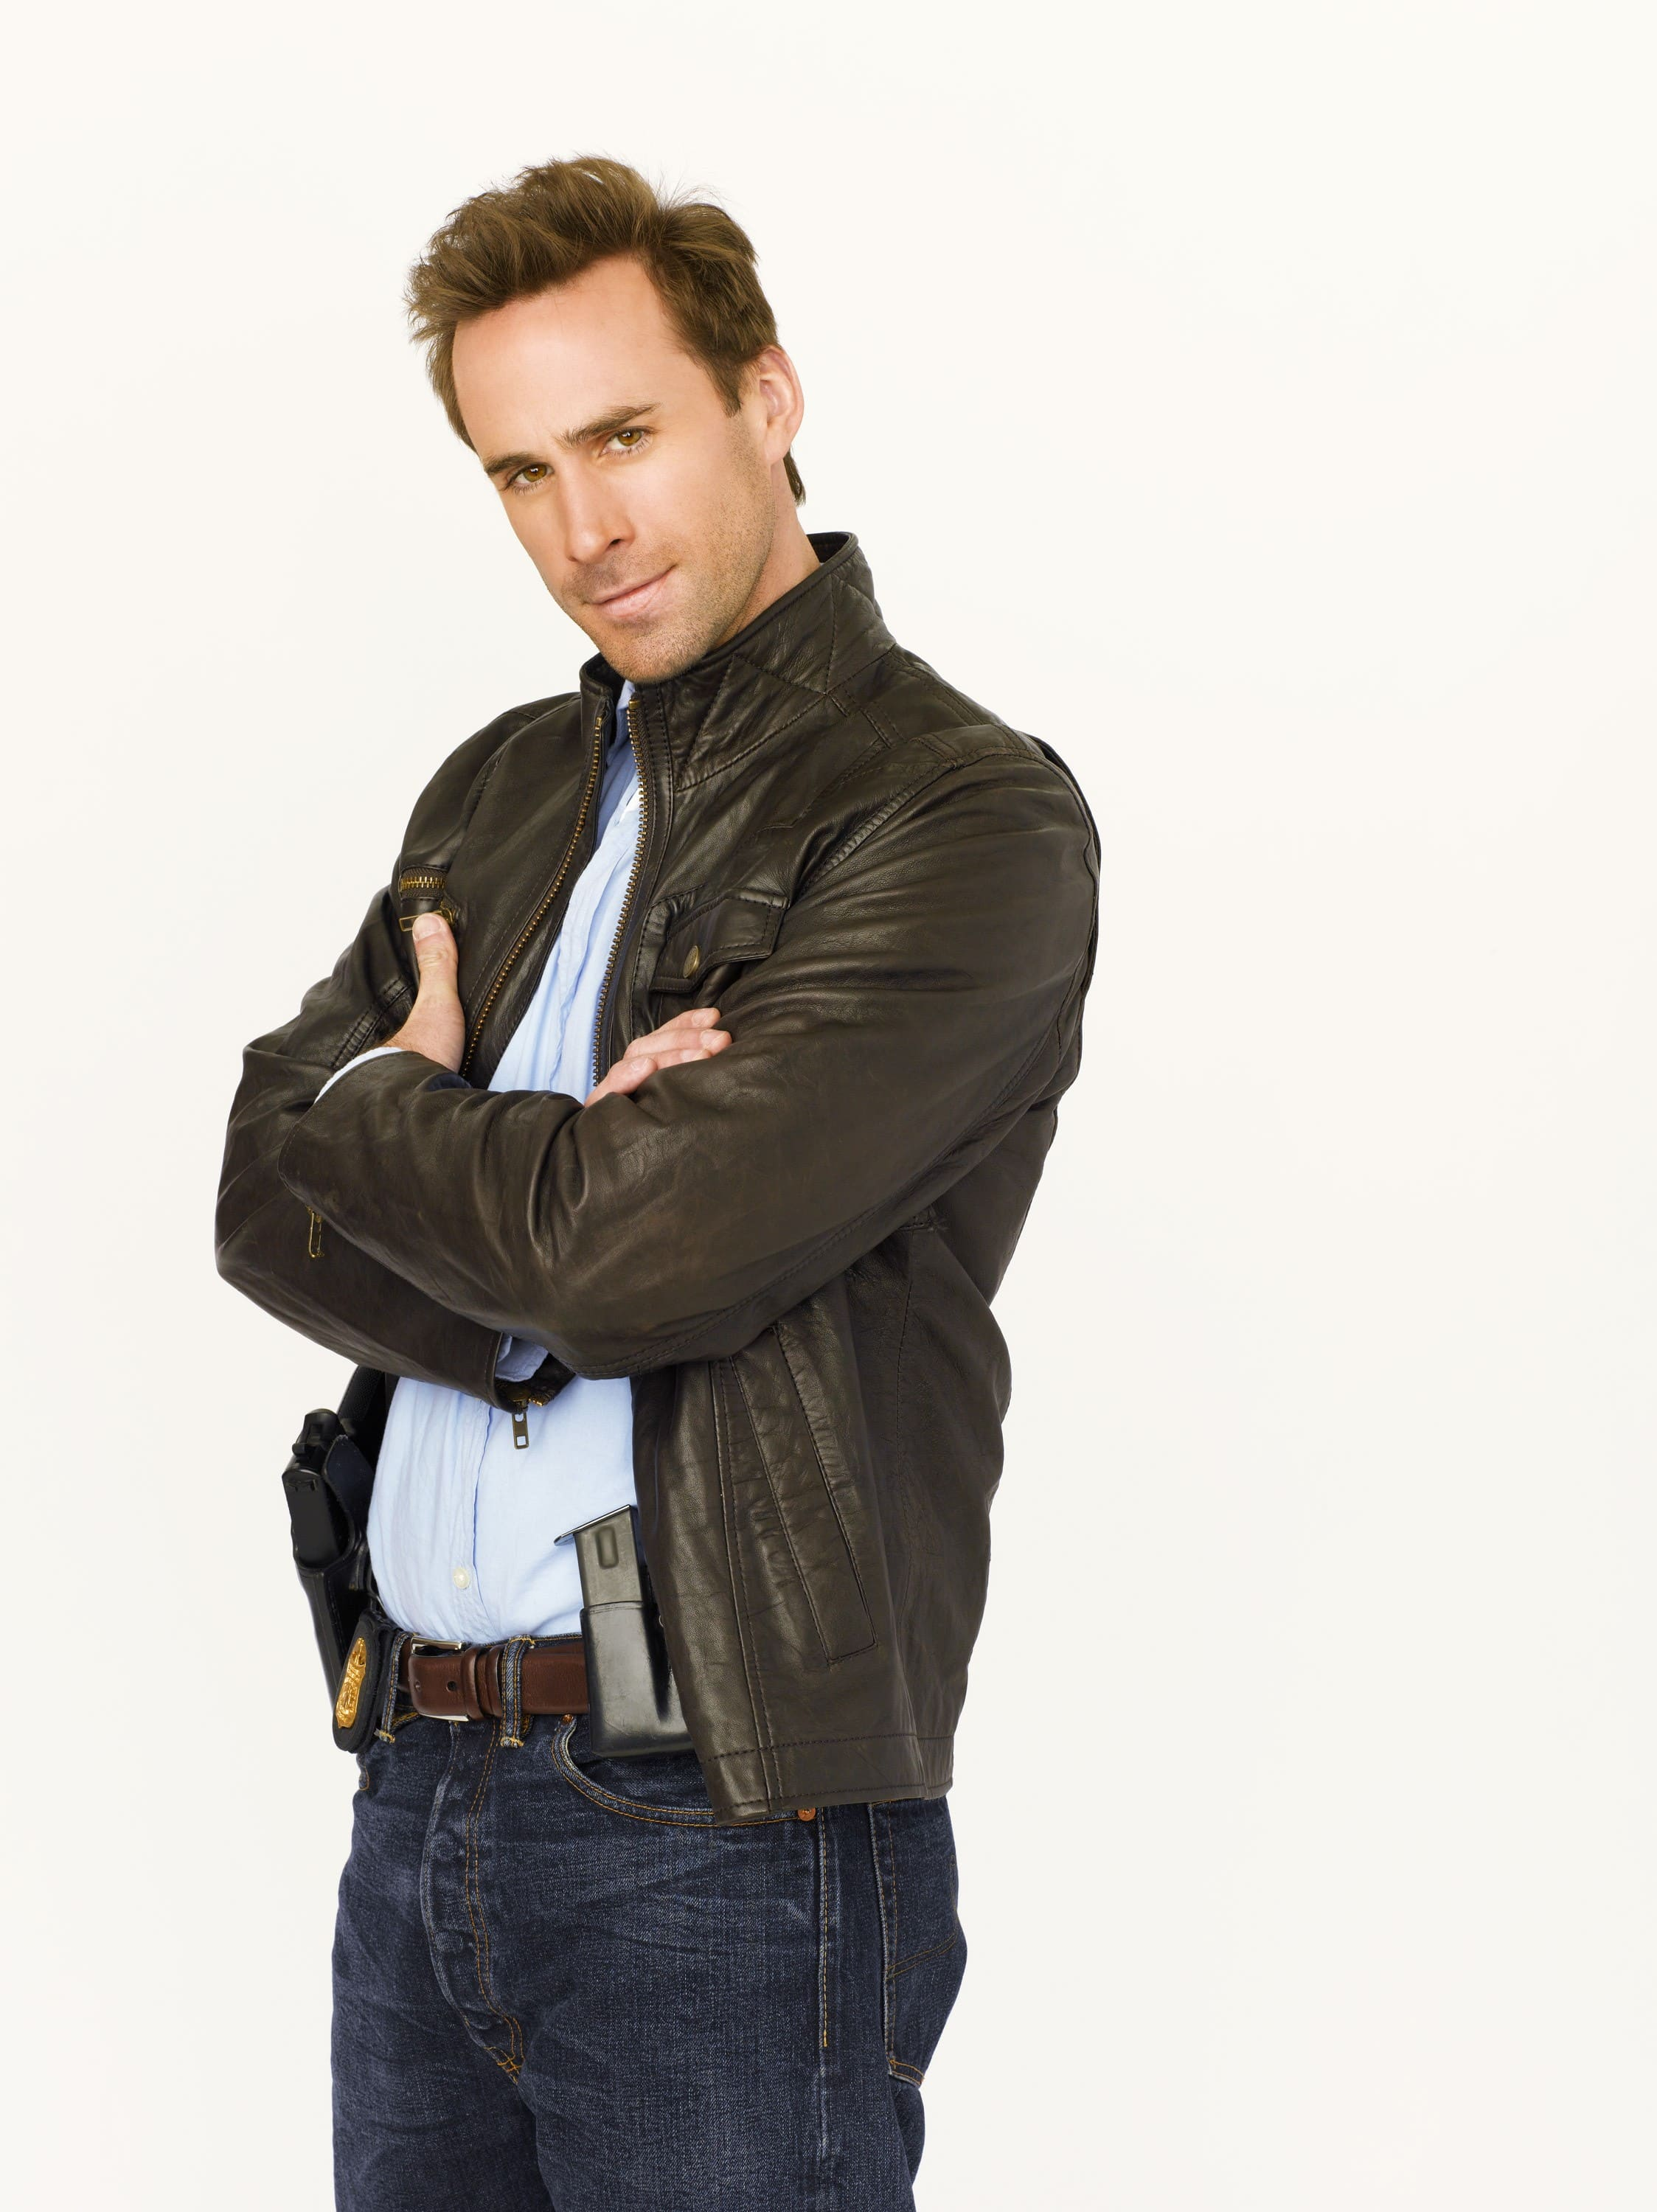 Jack Davenport For mobile